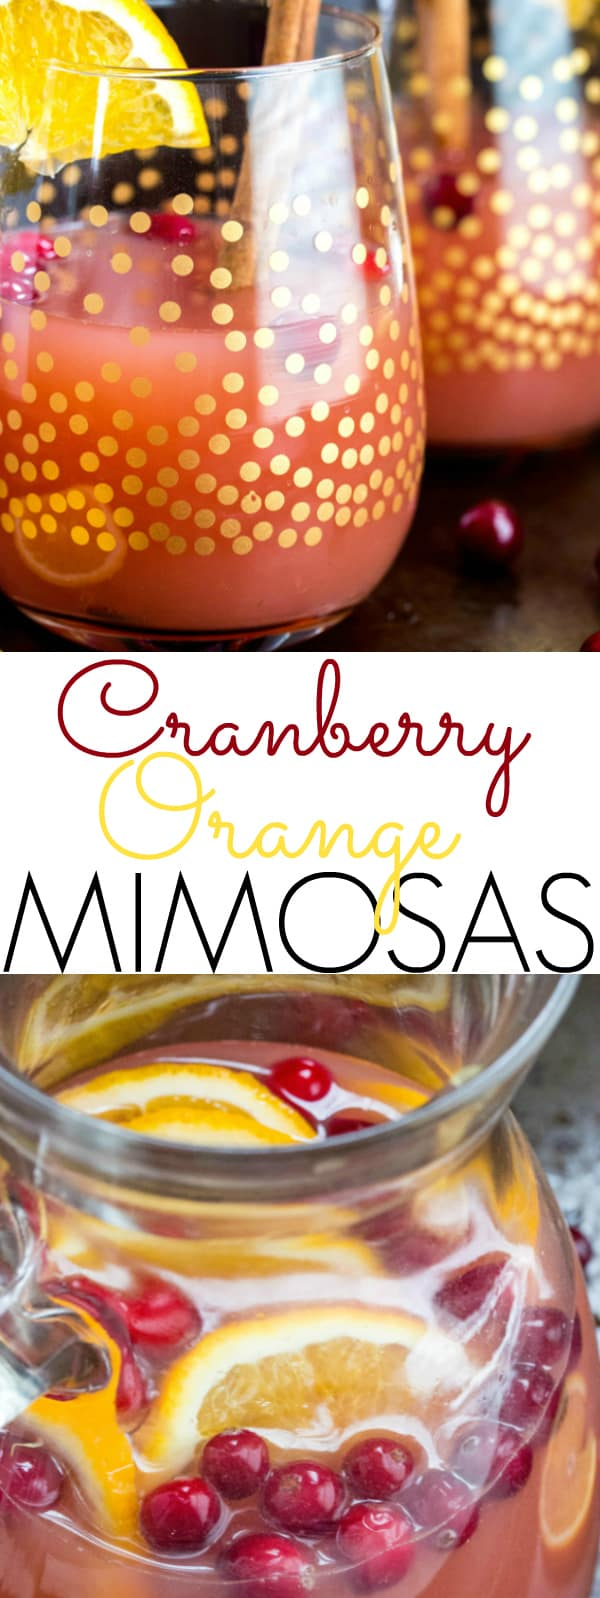 Cranberry Orange Mimosas  collage with words in middle